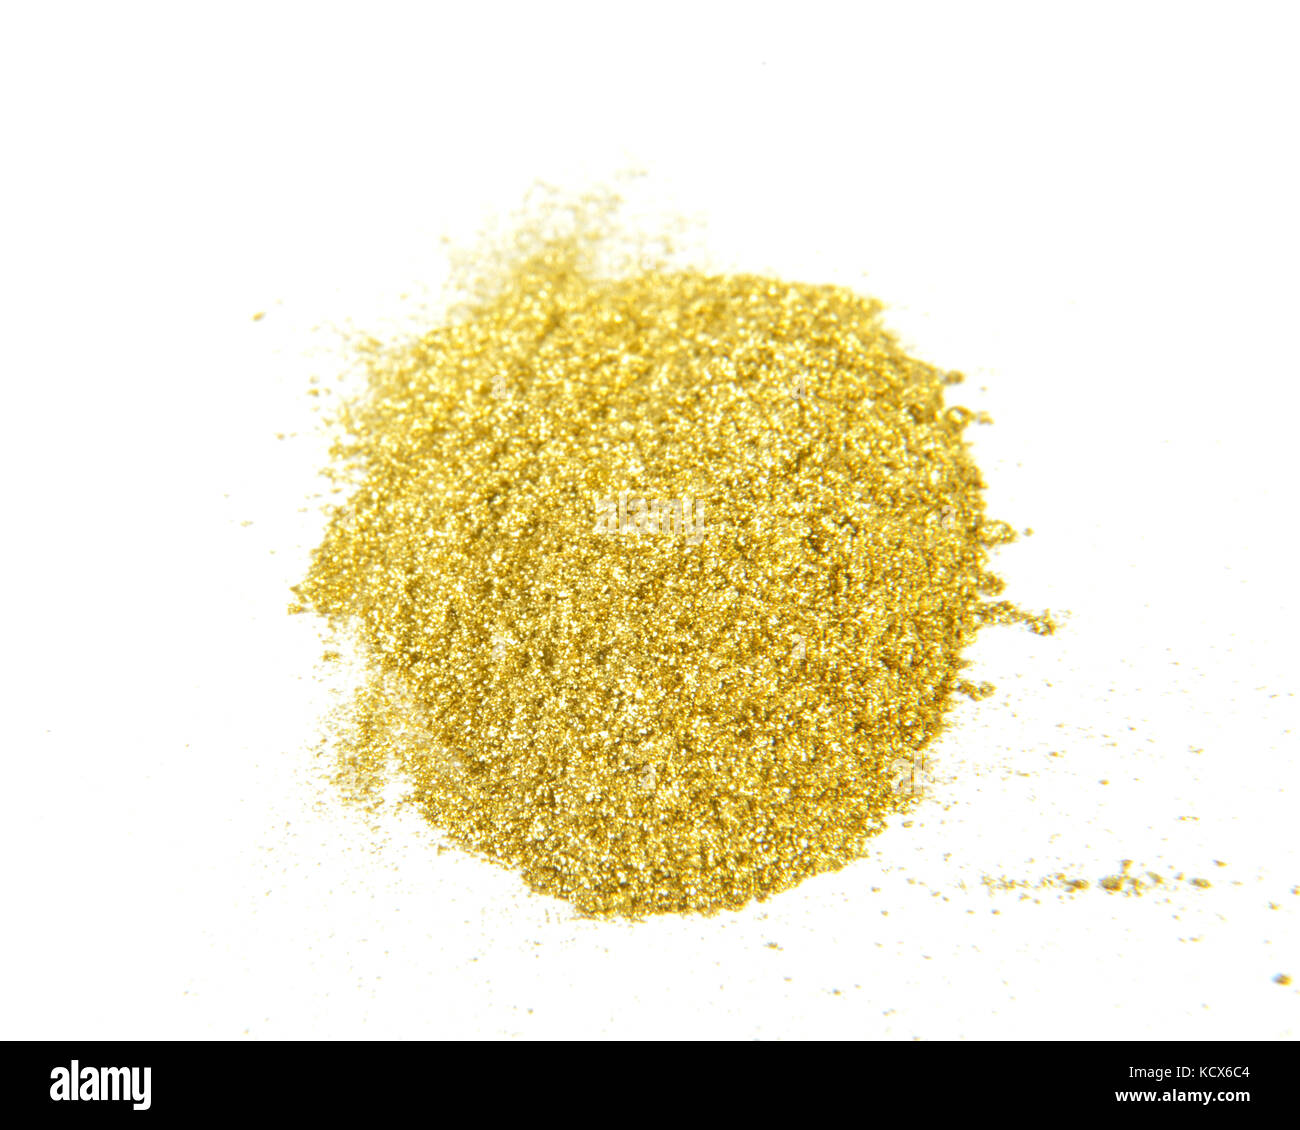 image of a gold glitter powder on white background - Stock Image